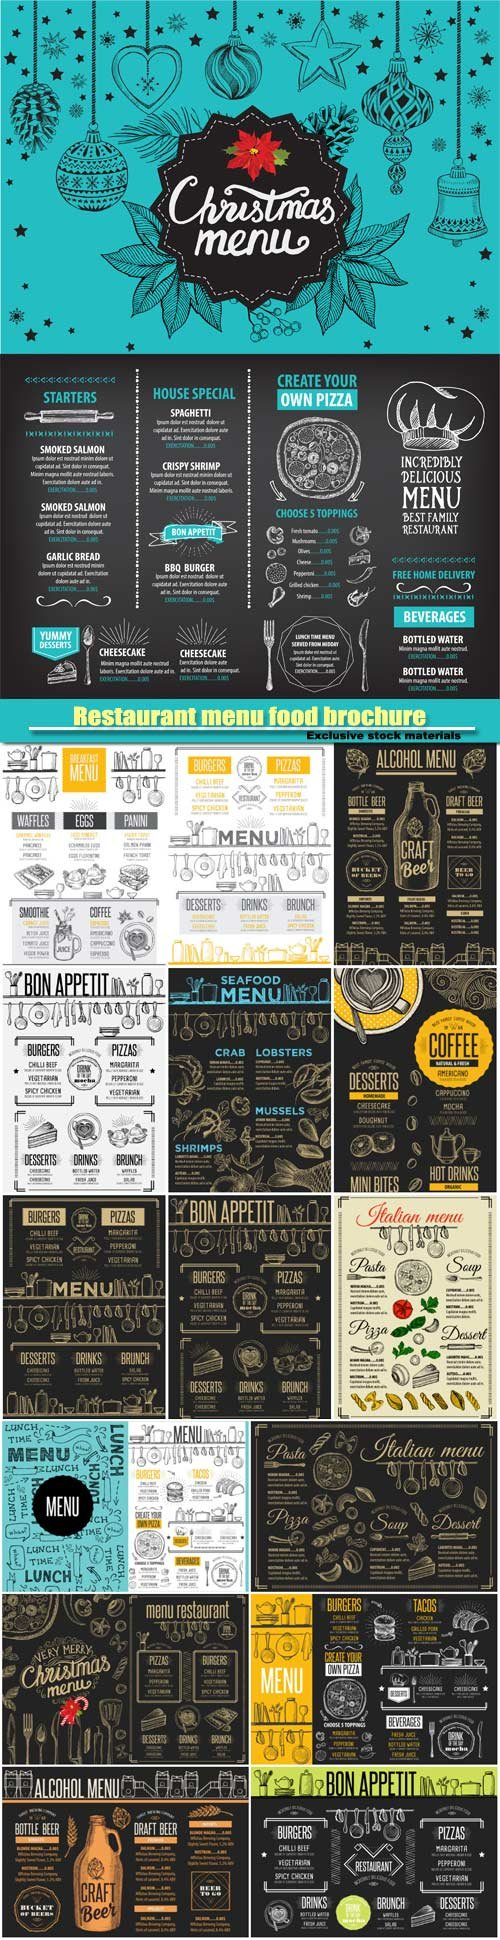 Restaurant menu placemat food brochure, cafe template design, vintage creative dinner flyer with hand-drawn graphic